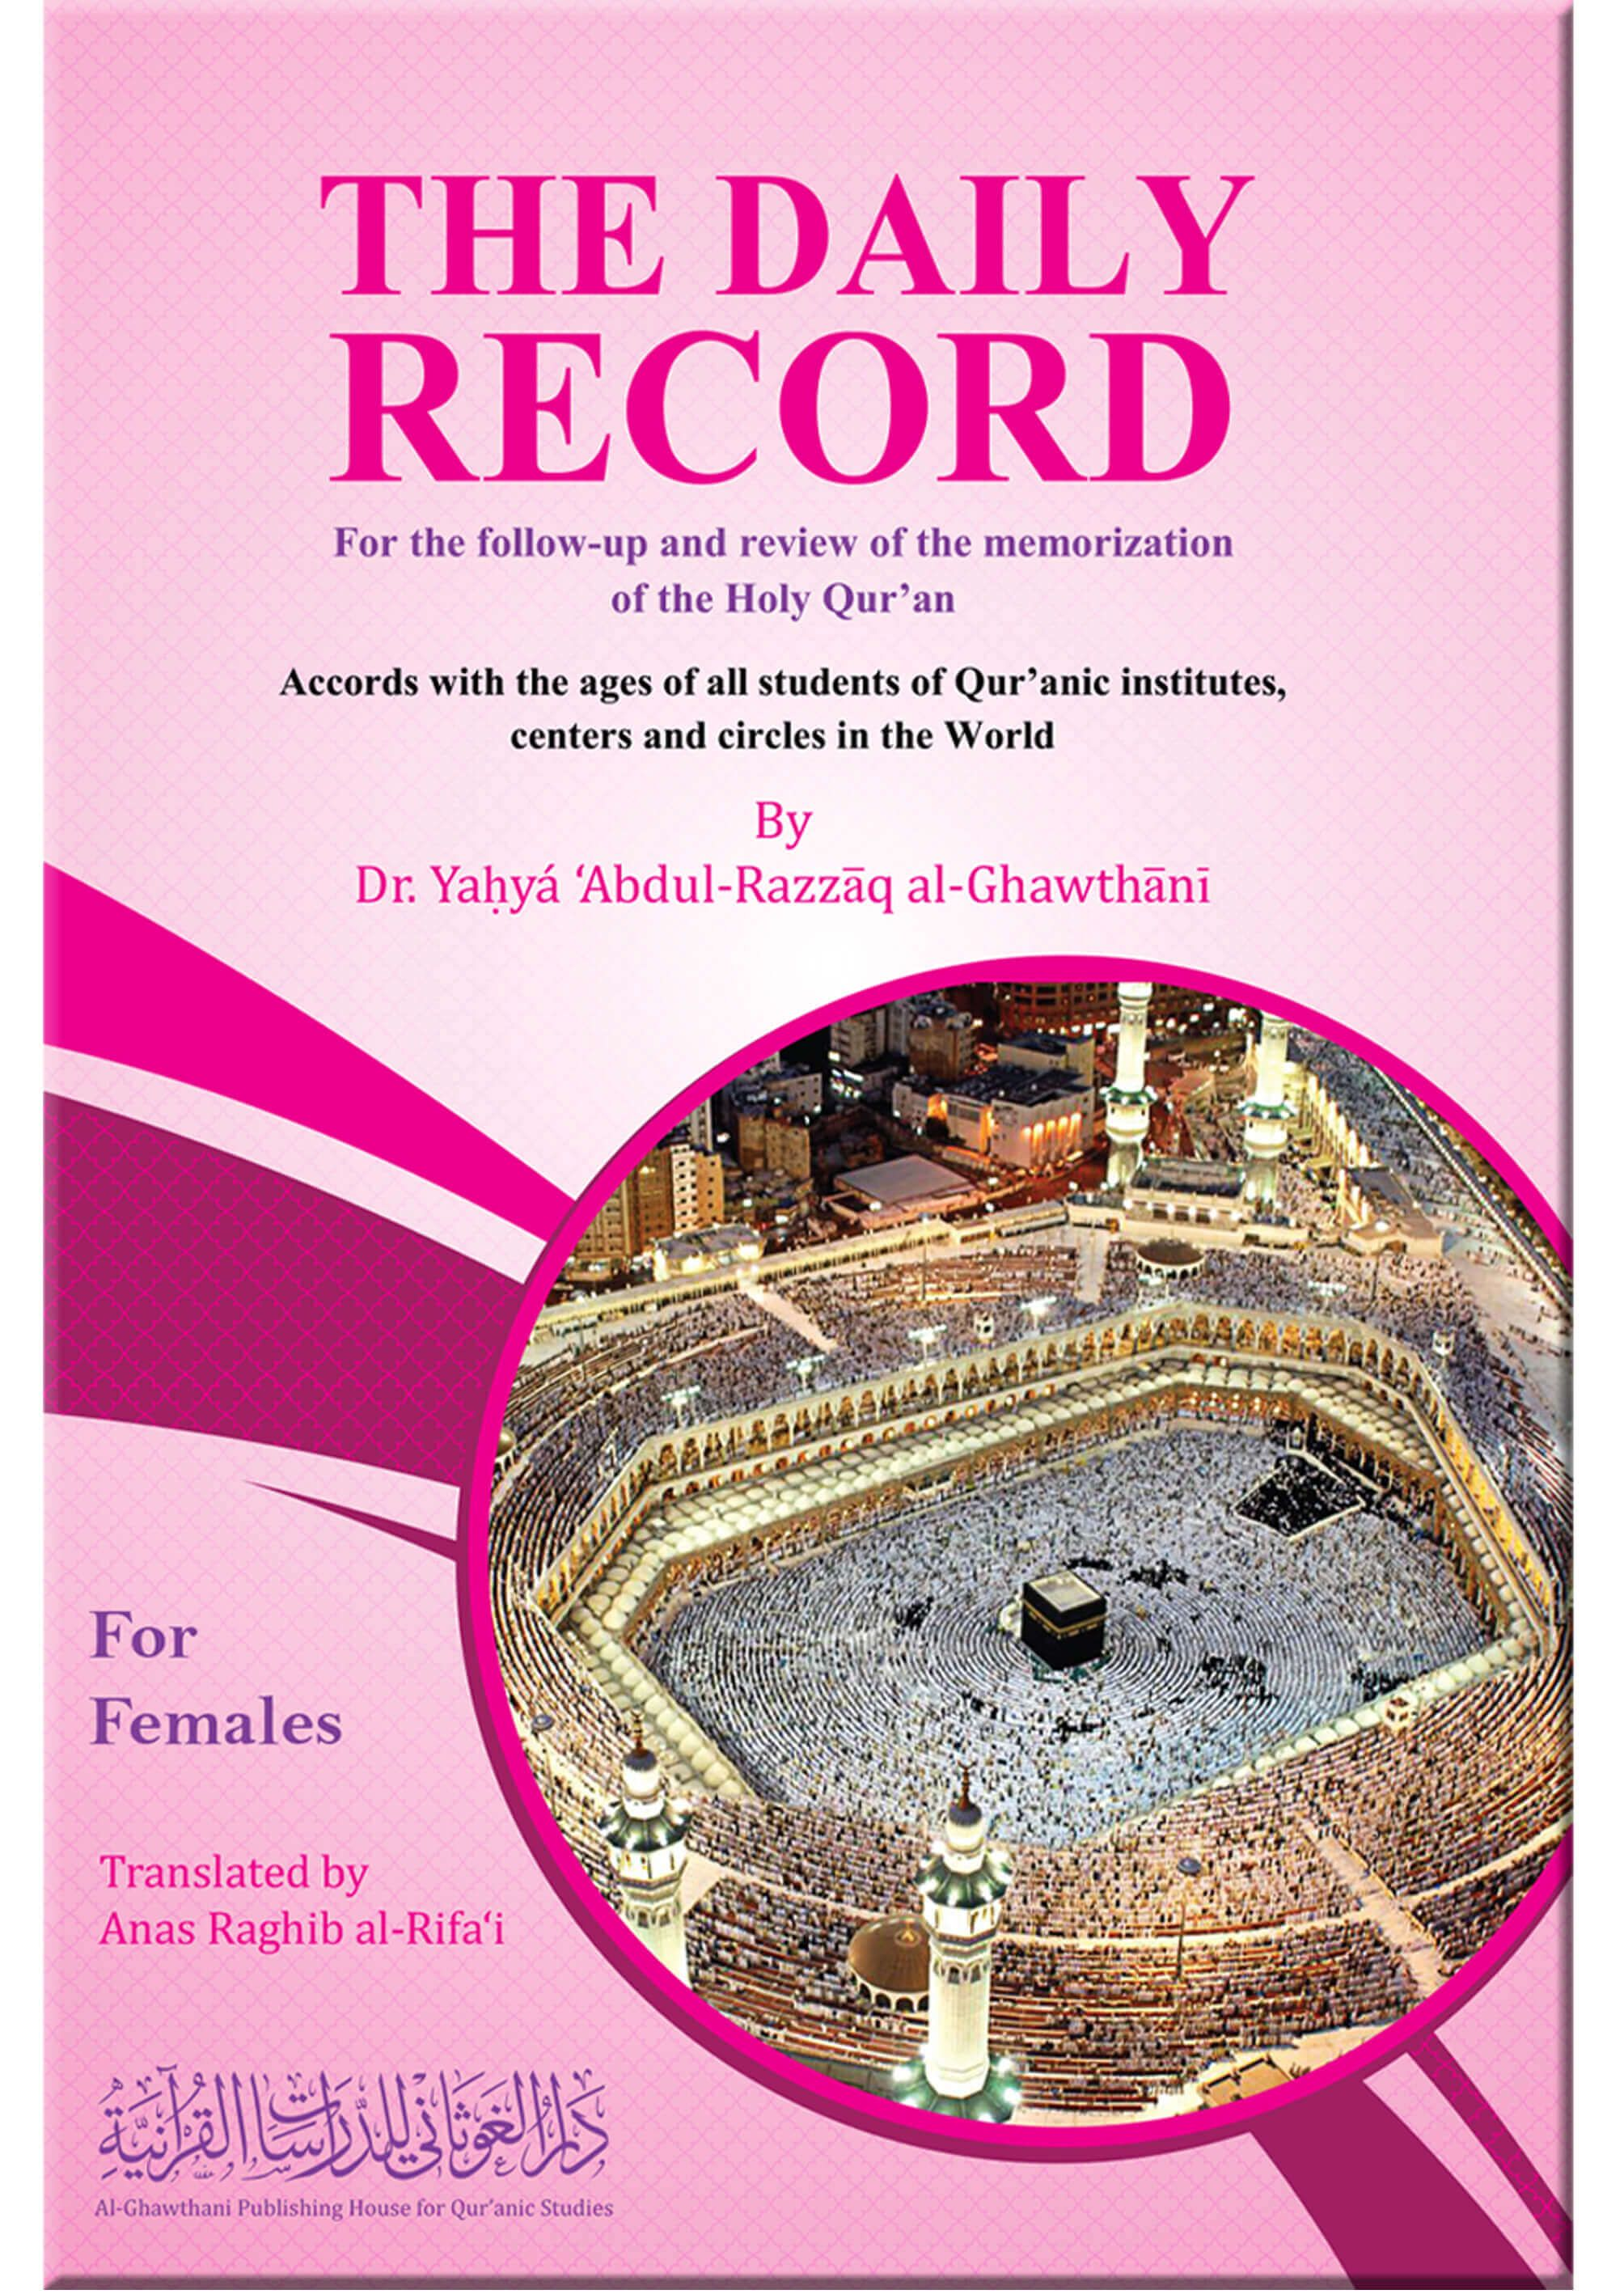 Daily Record for Following up on Memorizing the Holy Quran (Females) English